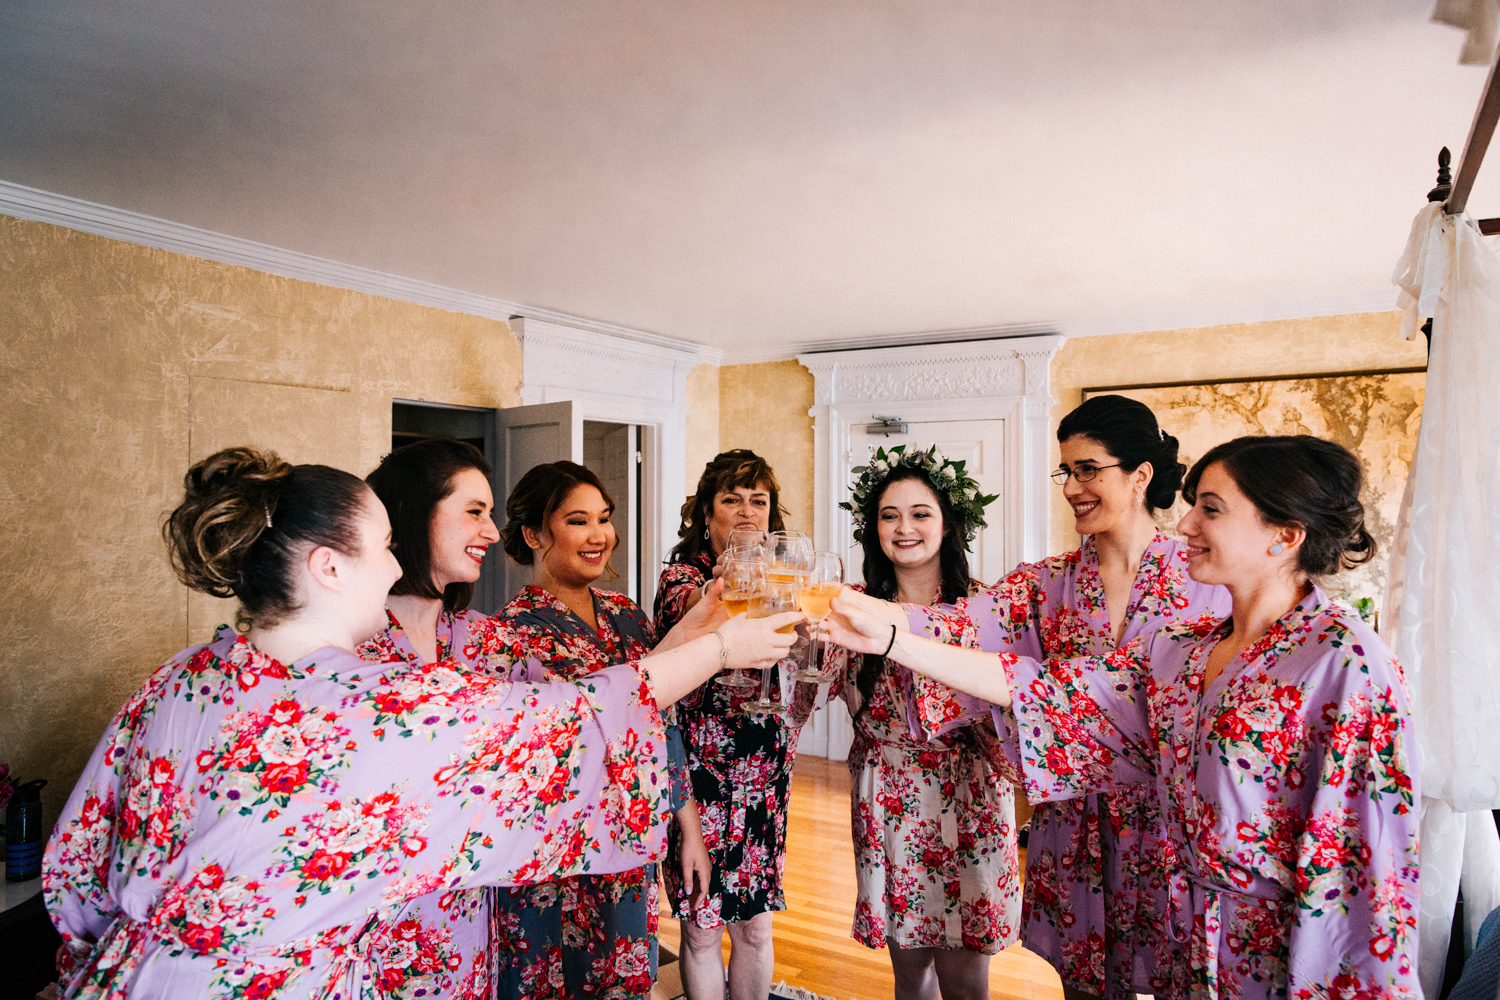 bridesmaids-gwyn-careg-inn-bride-new-england-wedding-connecticut-rhode-island.jpg